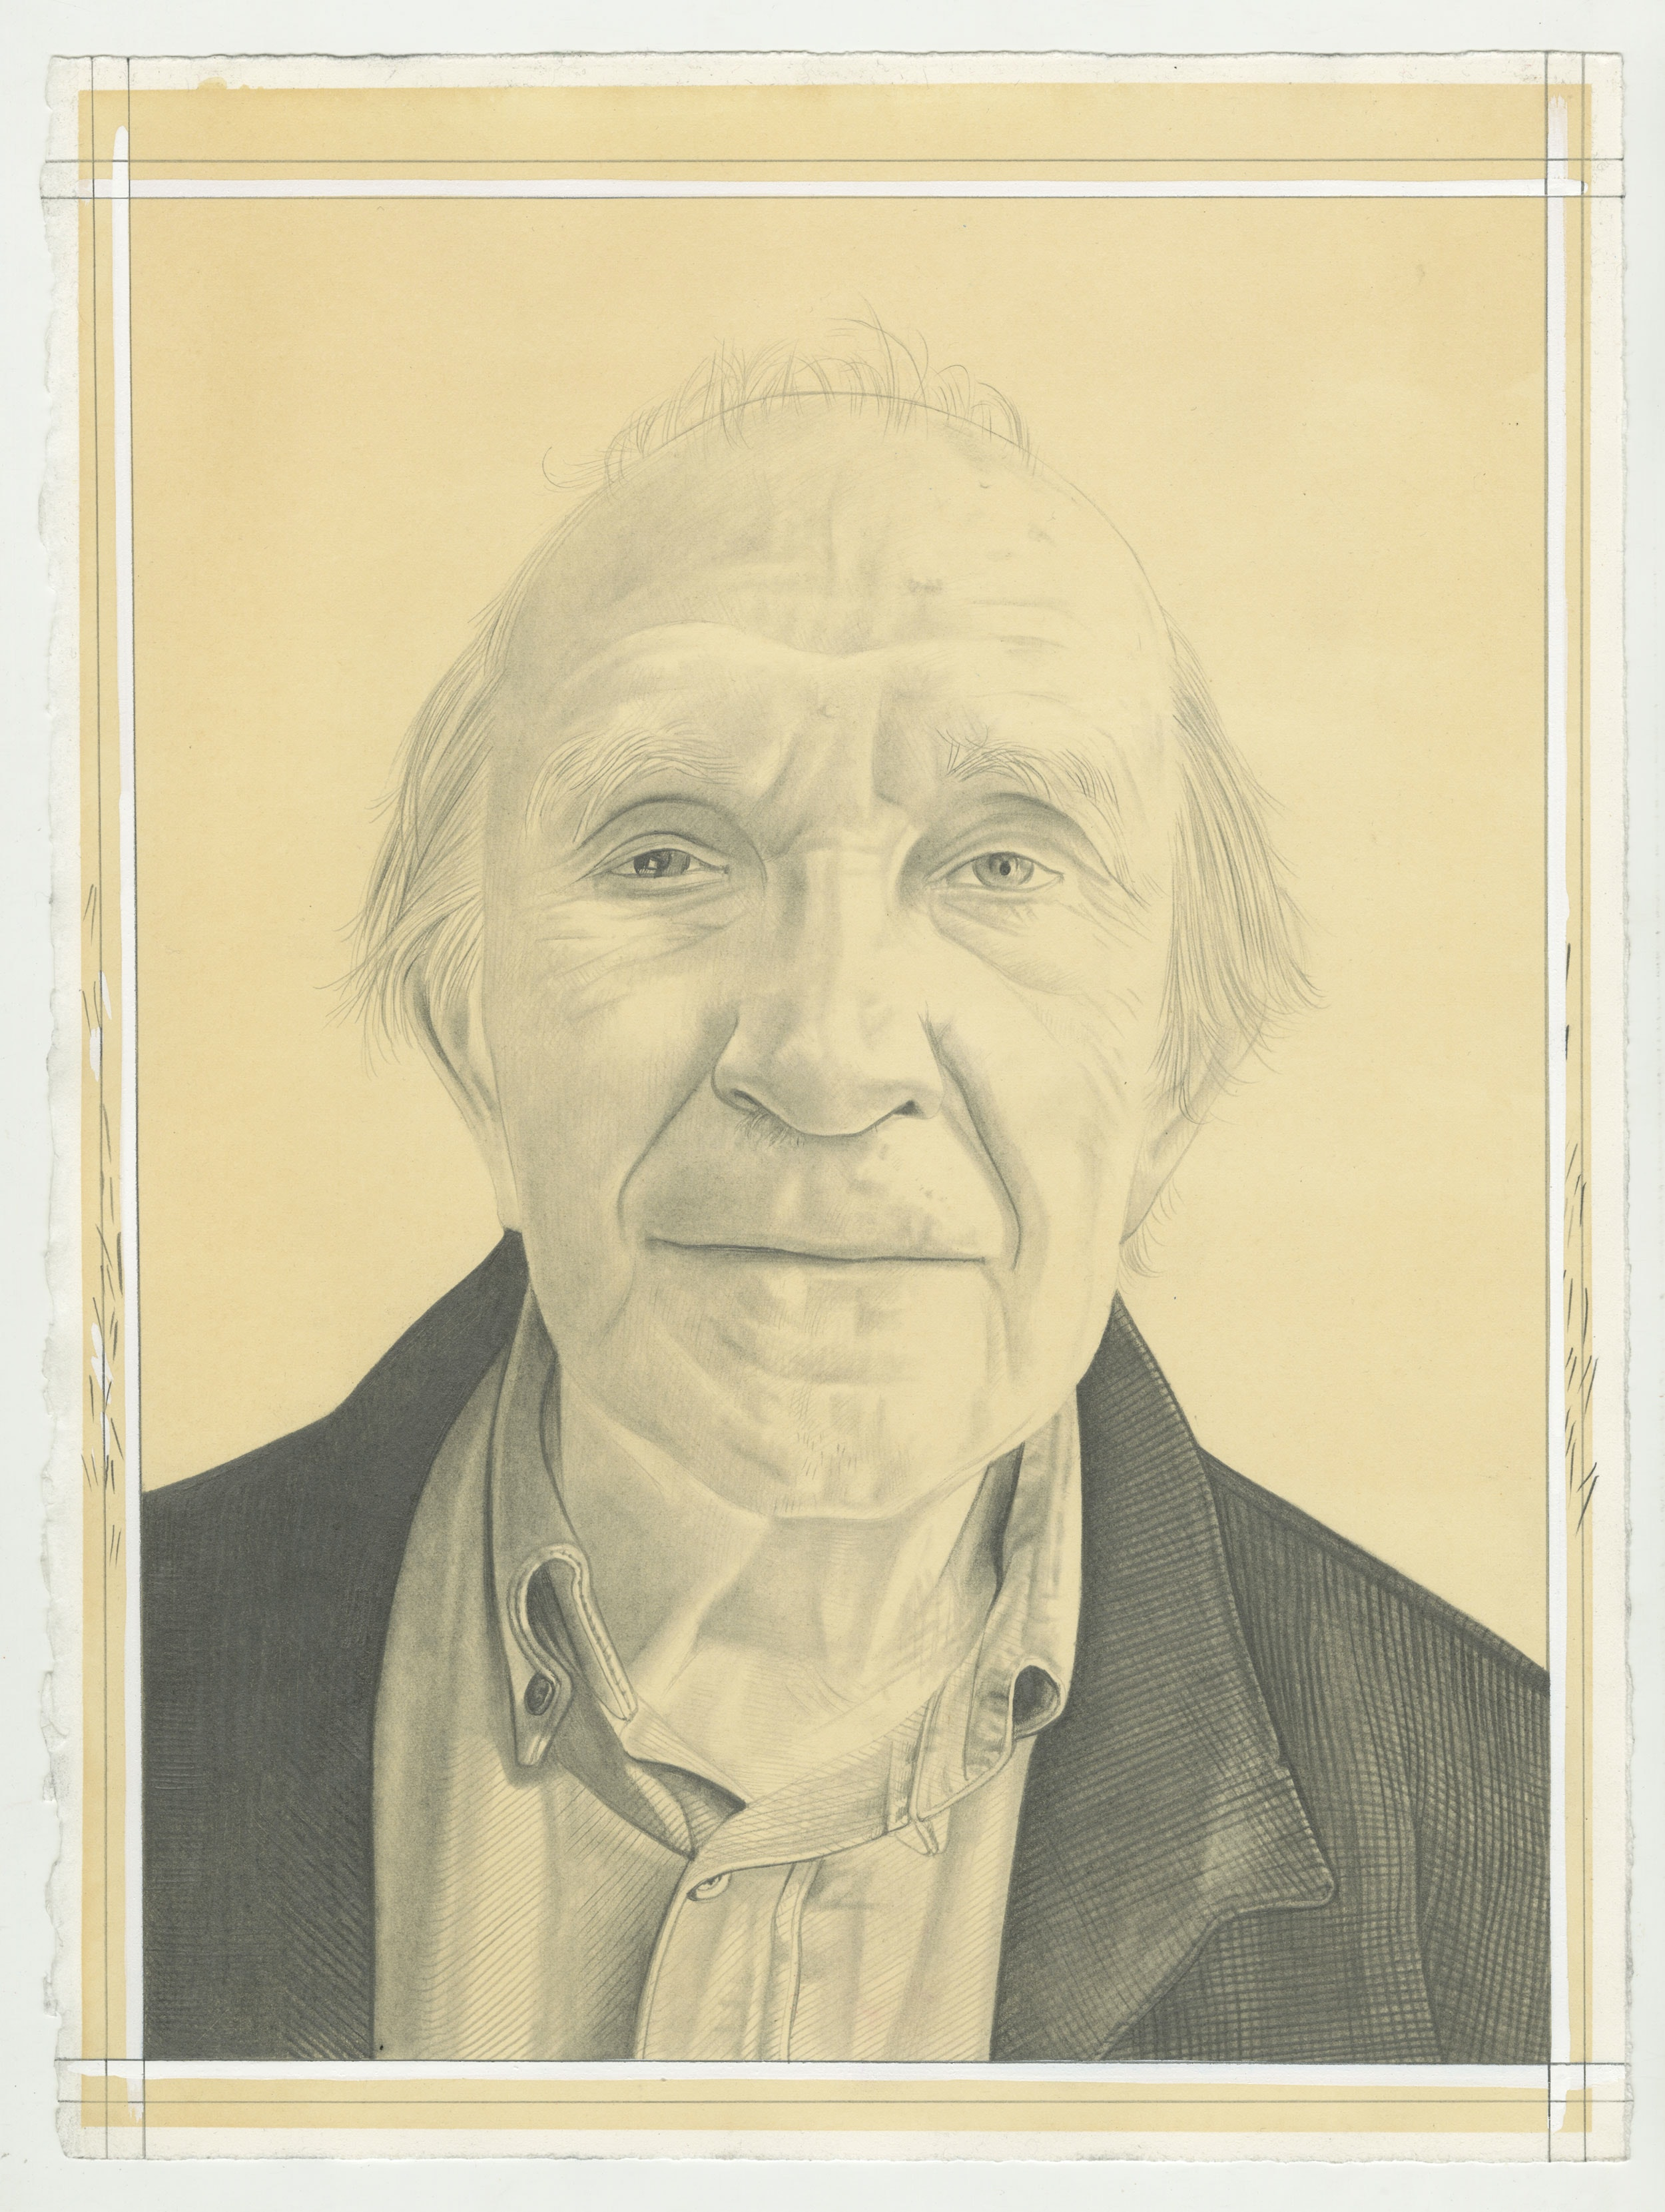 Michel Laclotte. Pencil on paper by Phong Bui.